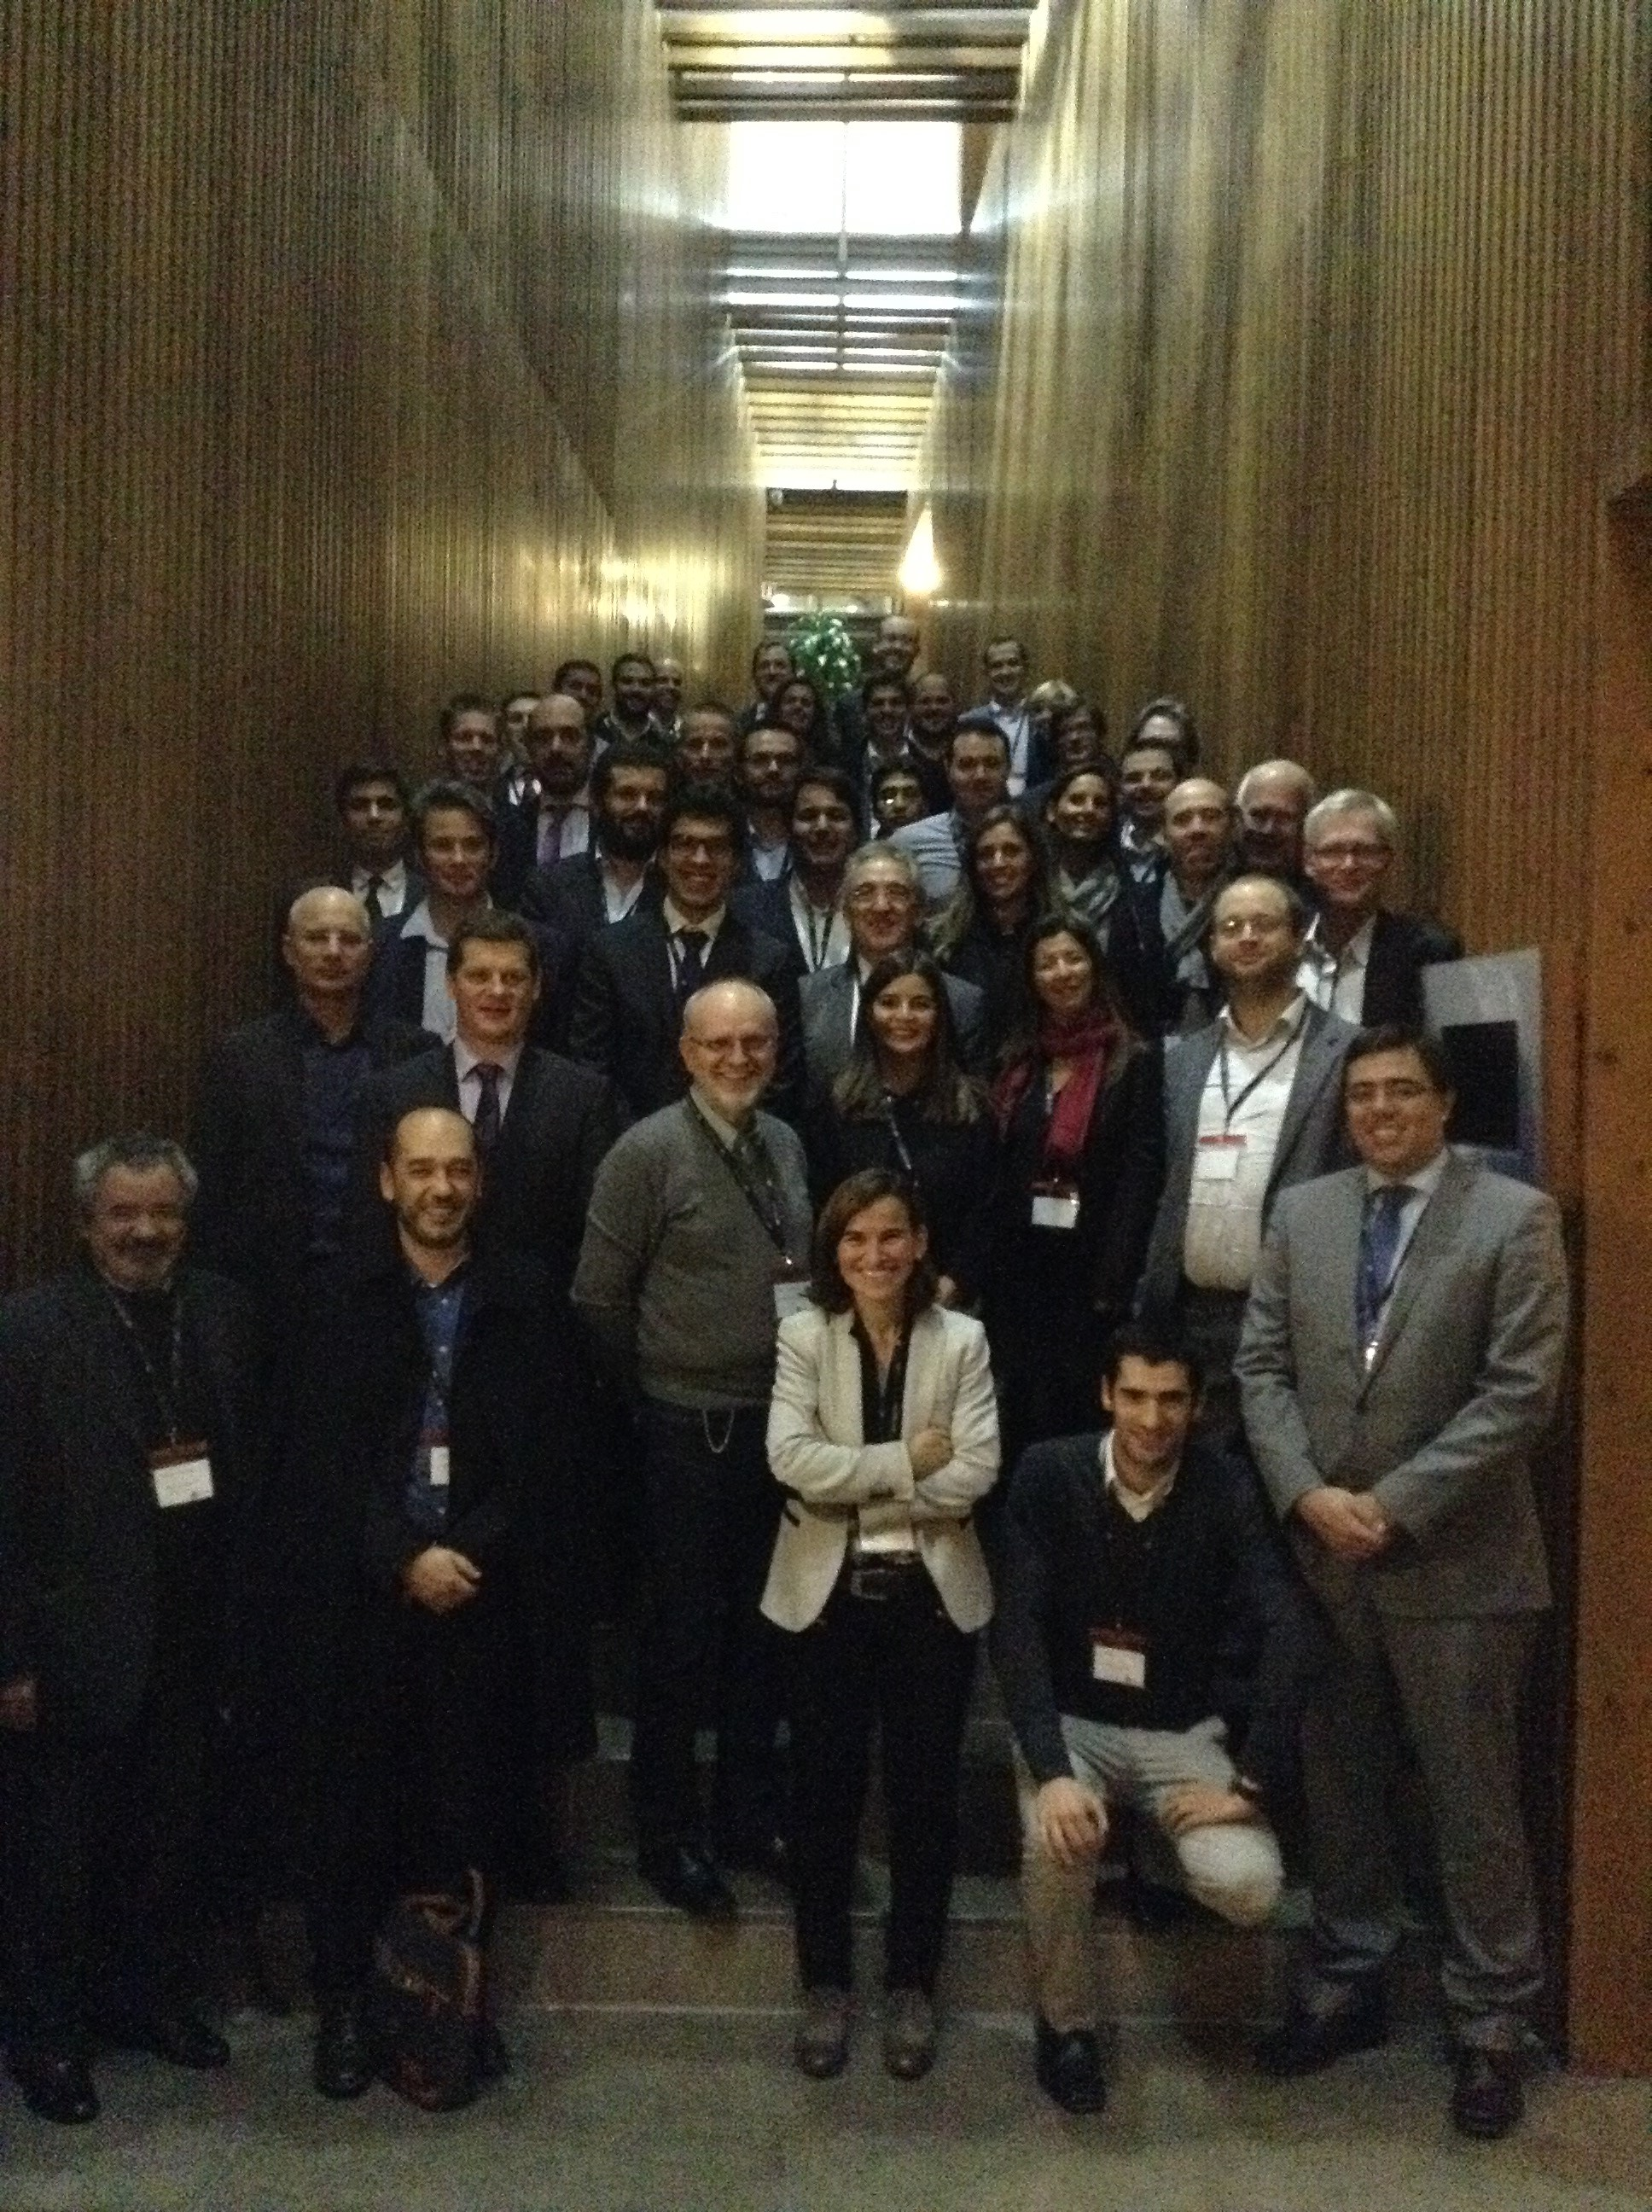 InteGrid, a 15M€ H2020 project on Low Carbon Energy, had its kick-off meeting in Lisbon (Portugal) on January 12th 2017.